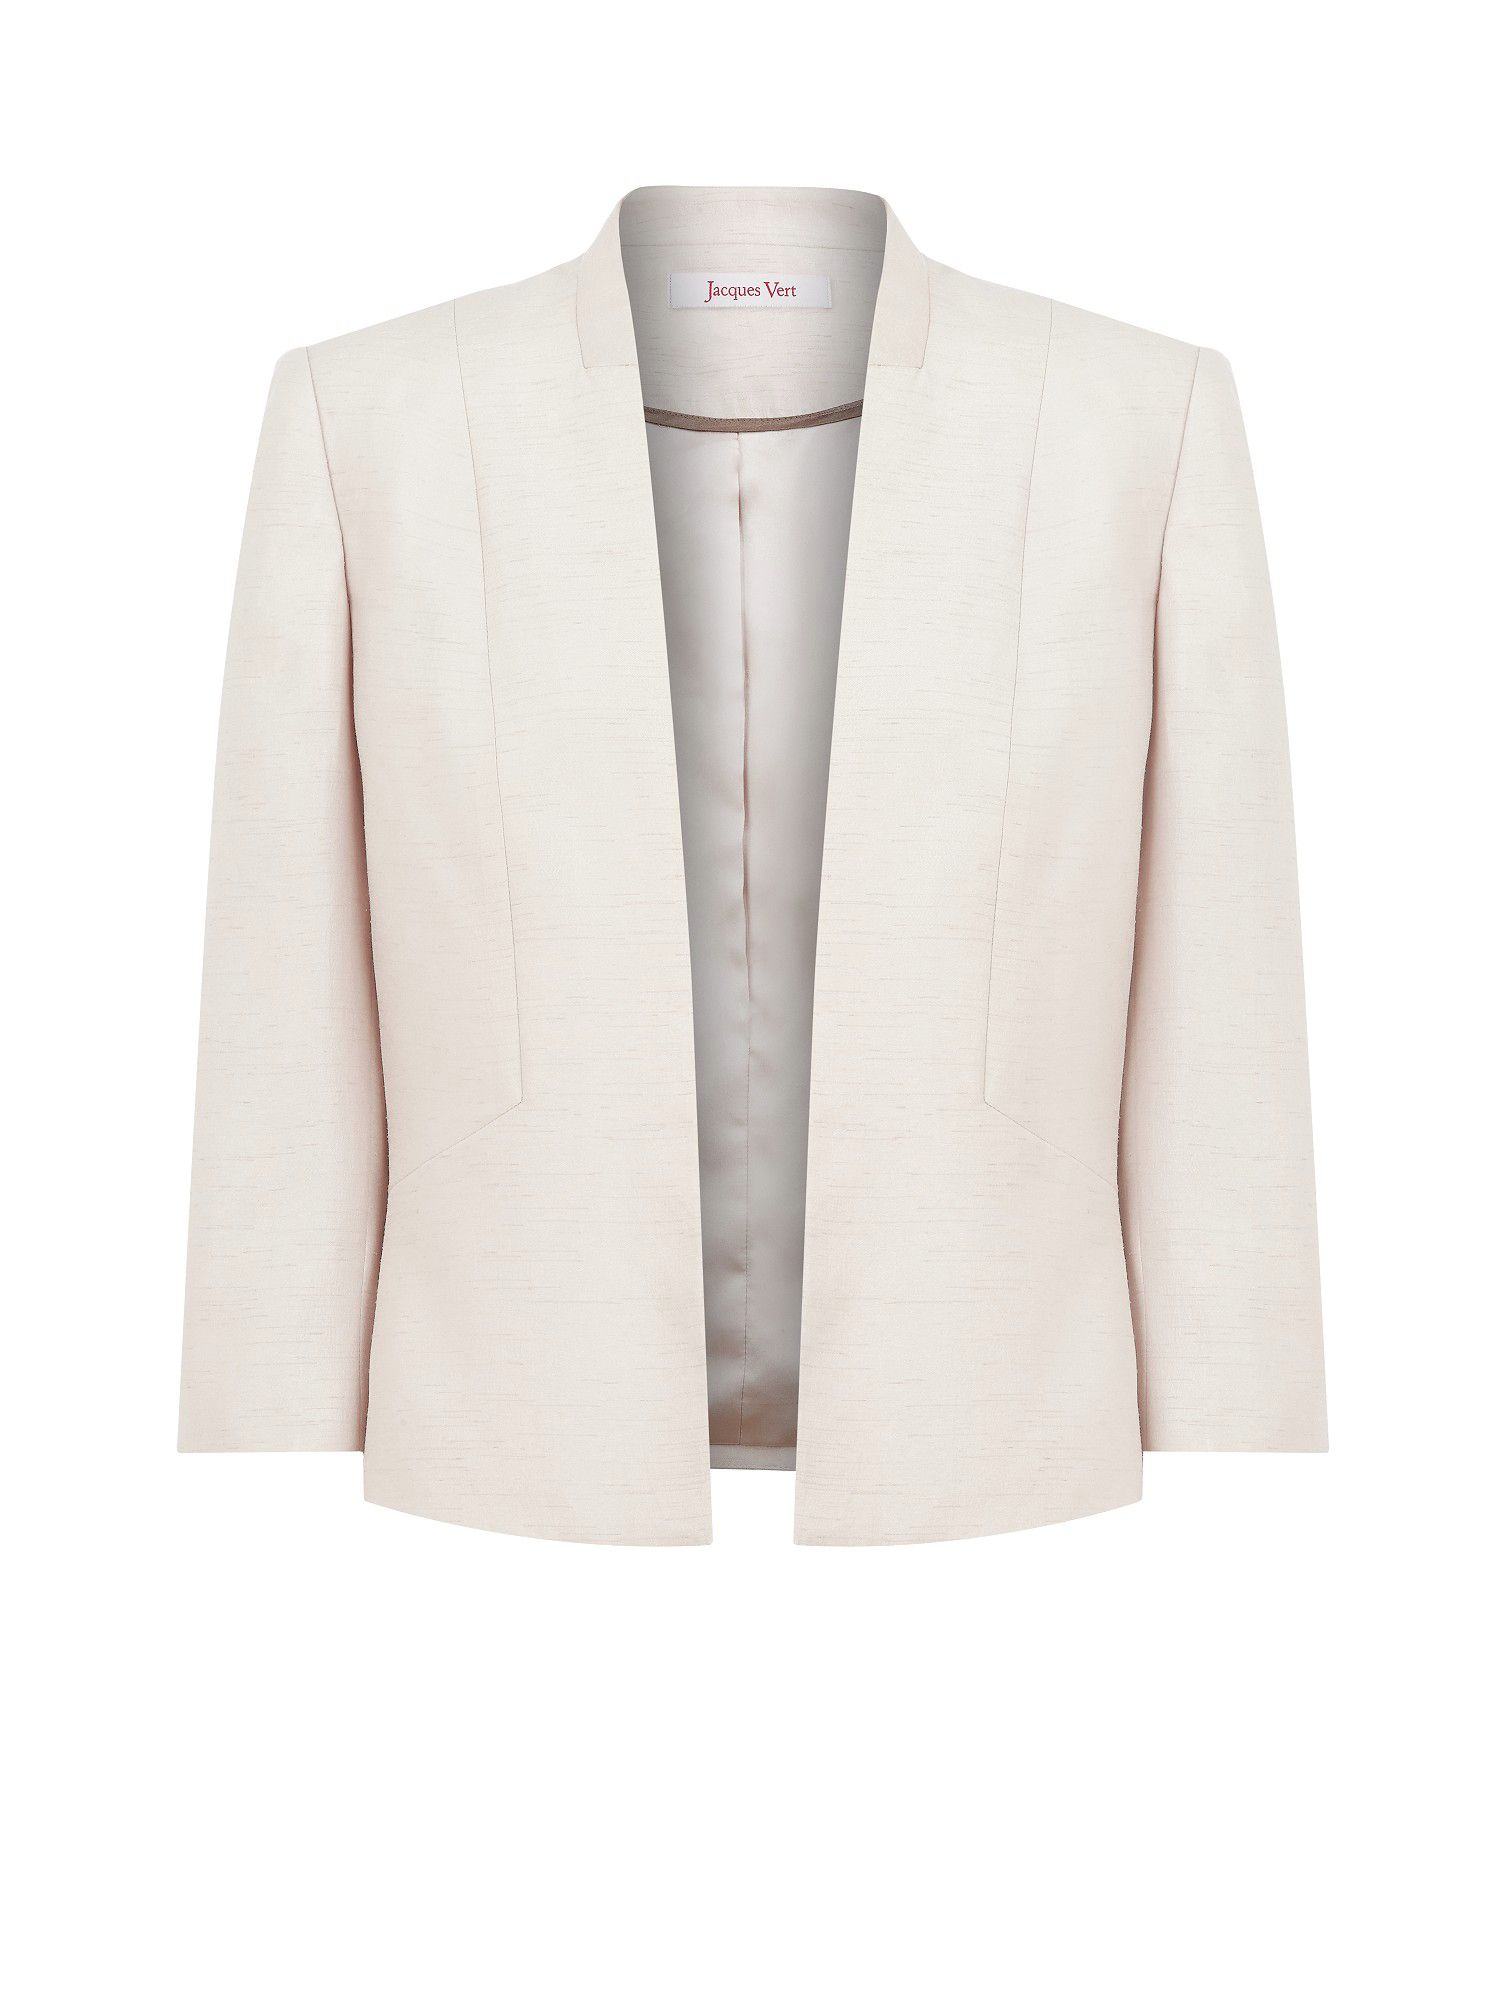 Champagne edge to edge jacket